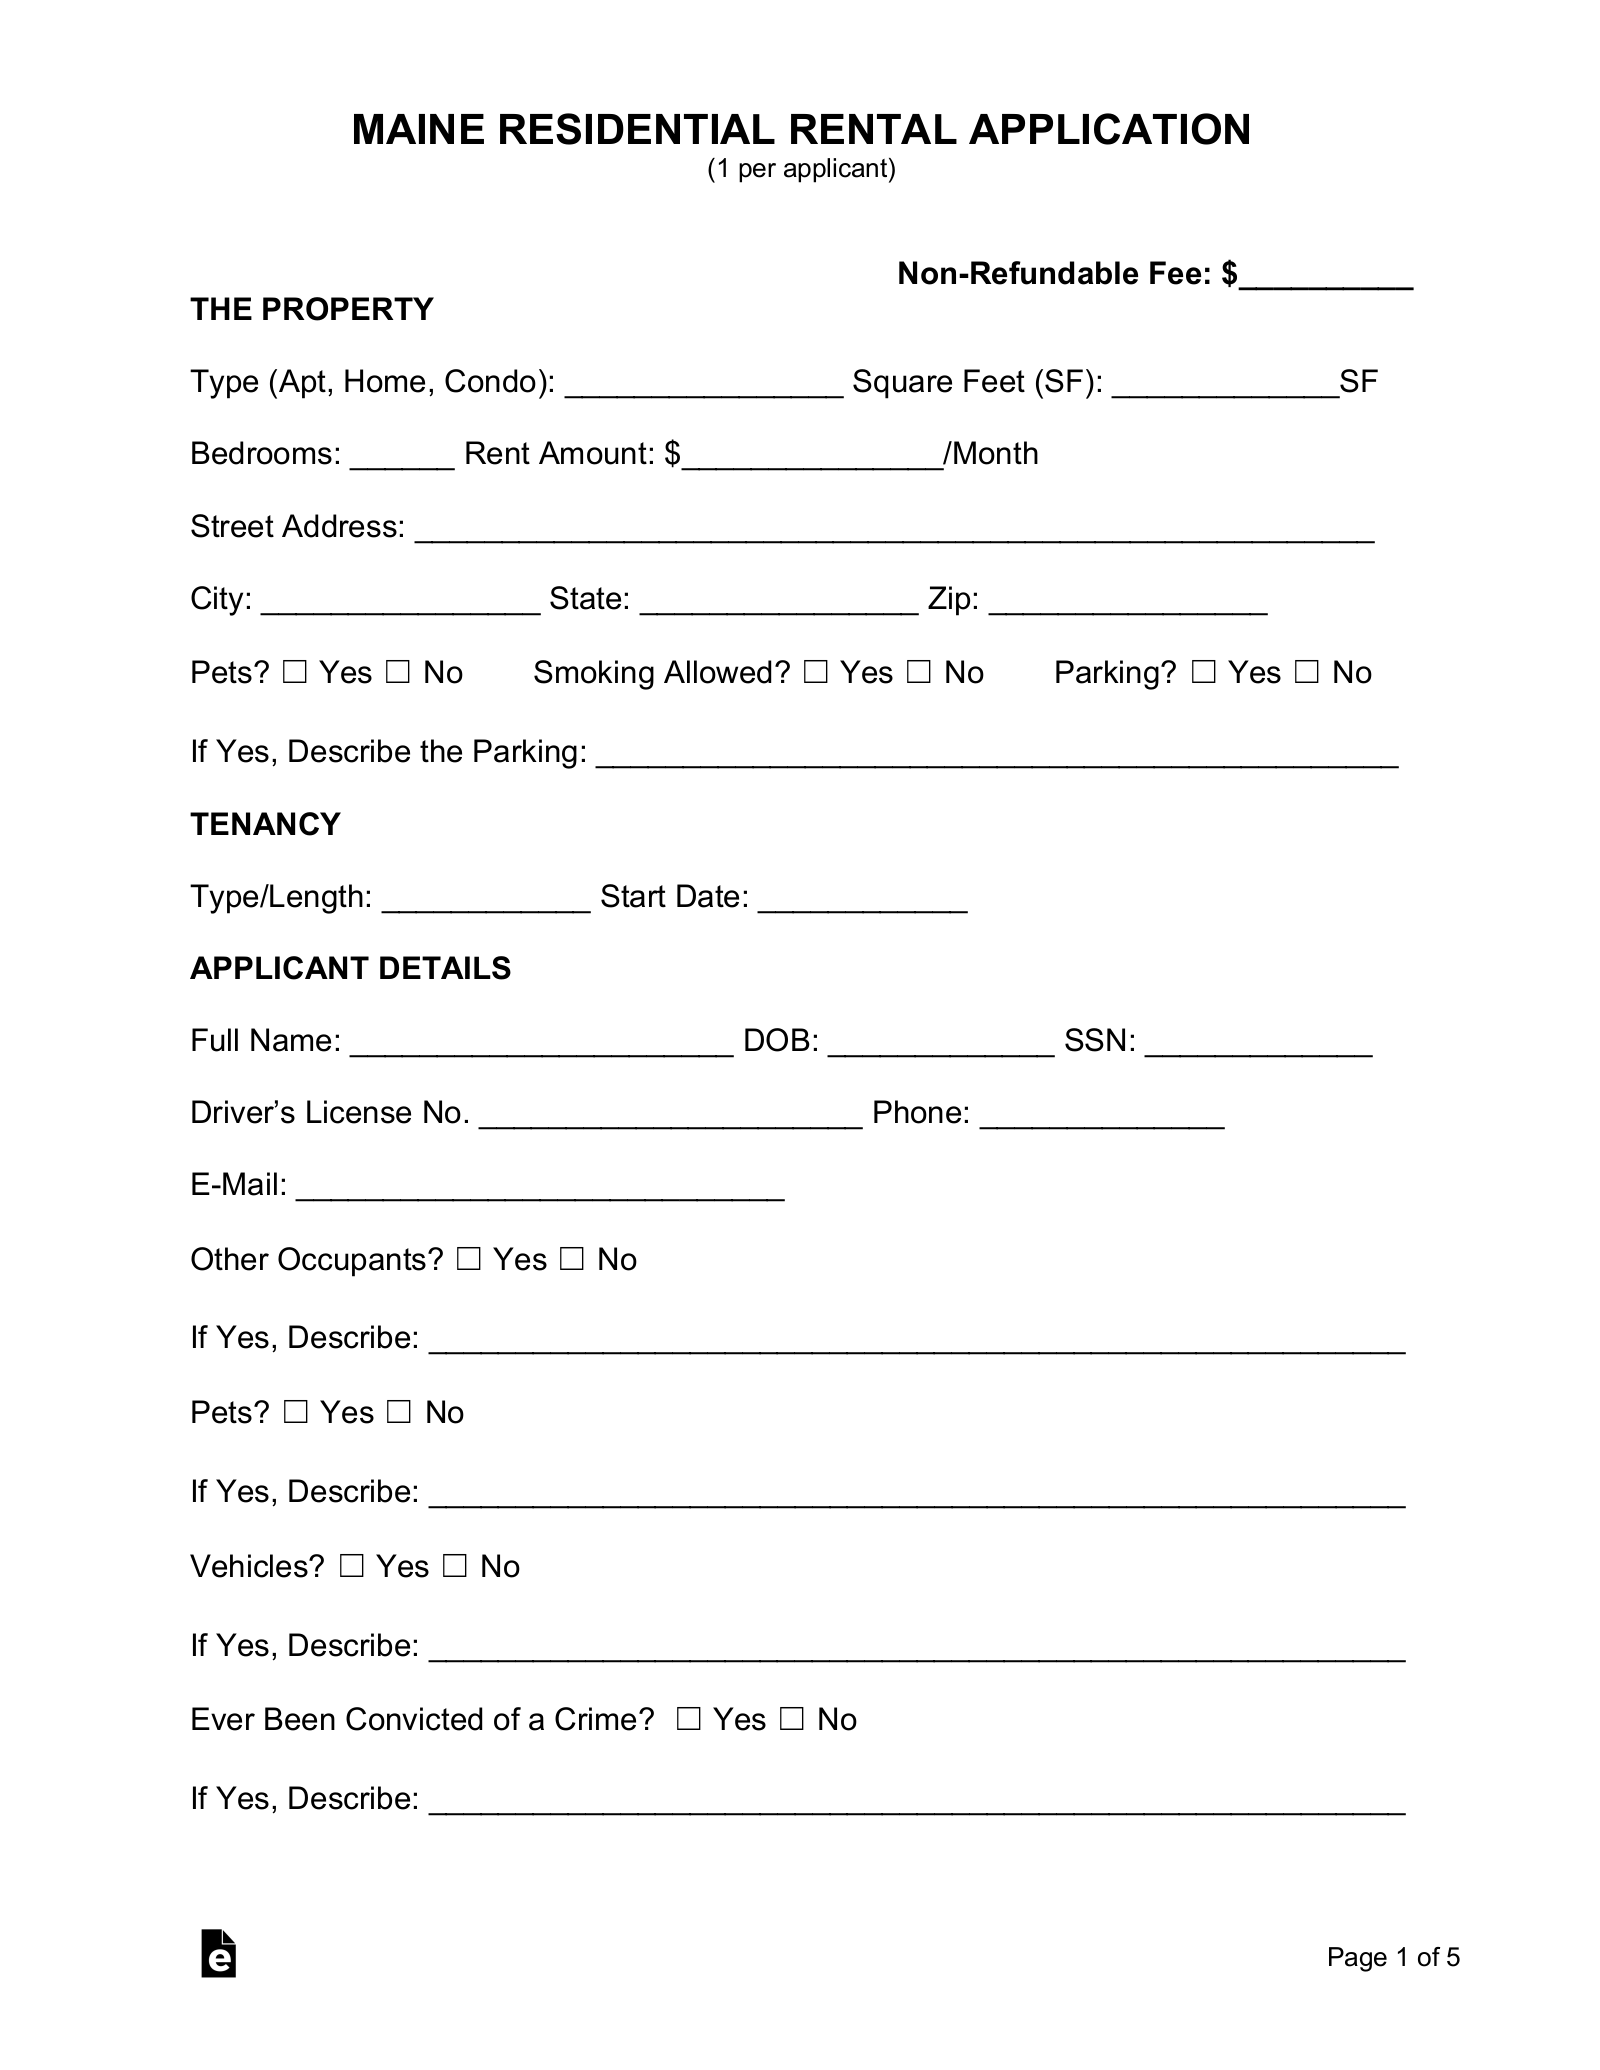 Free Maine Rental Application Form Pdf Eforms Free